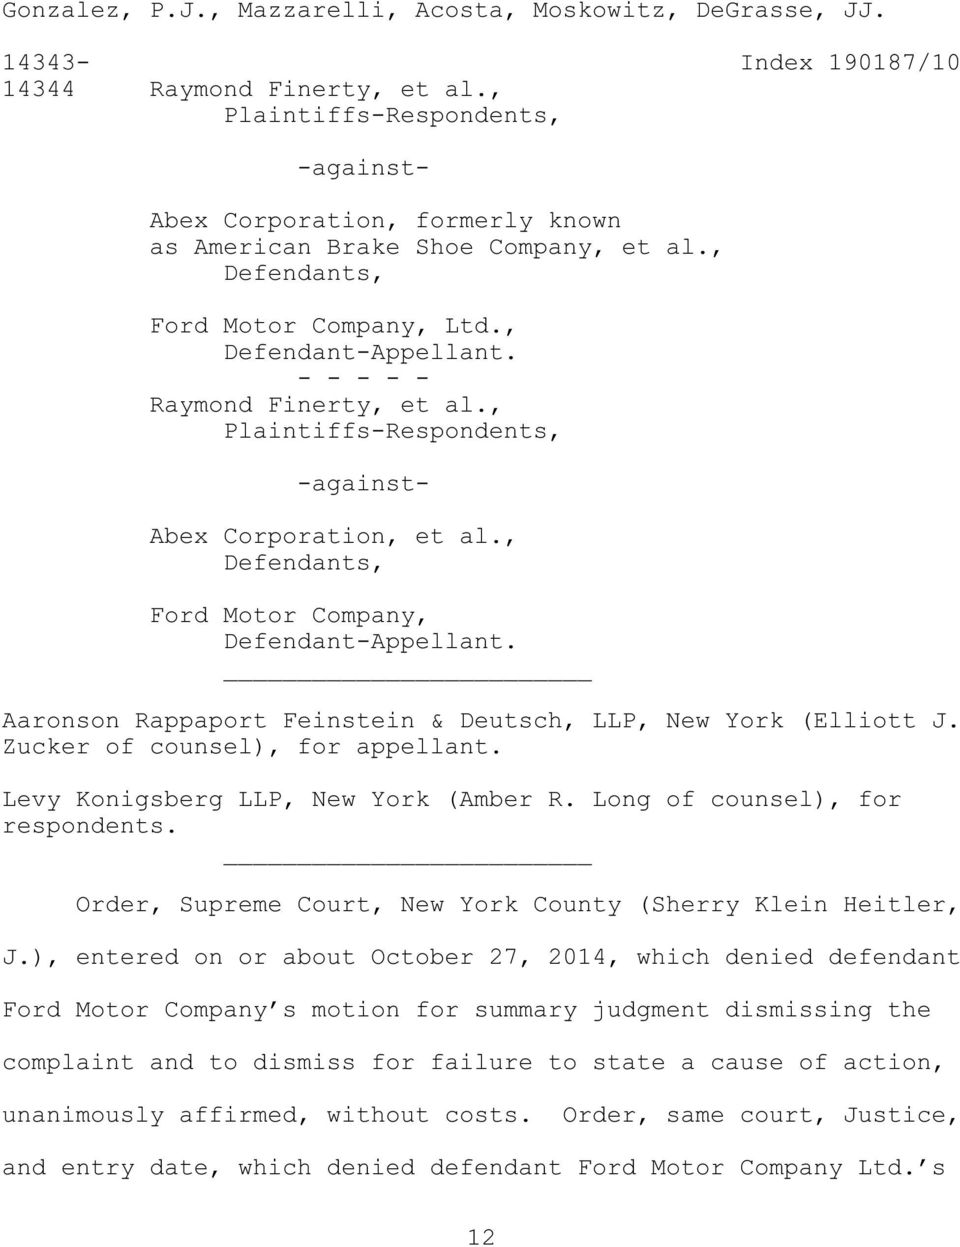 Supreme Court Appellate Division First Department February 26 2015